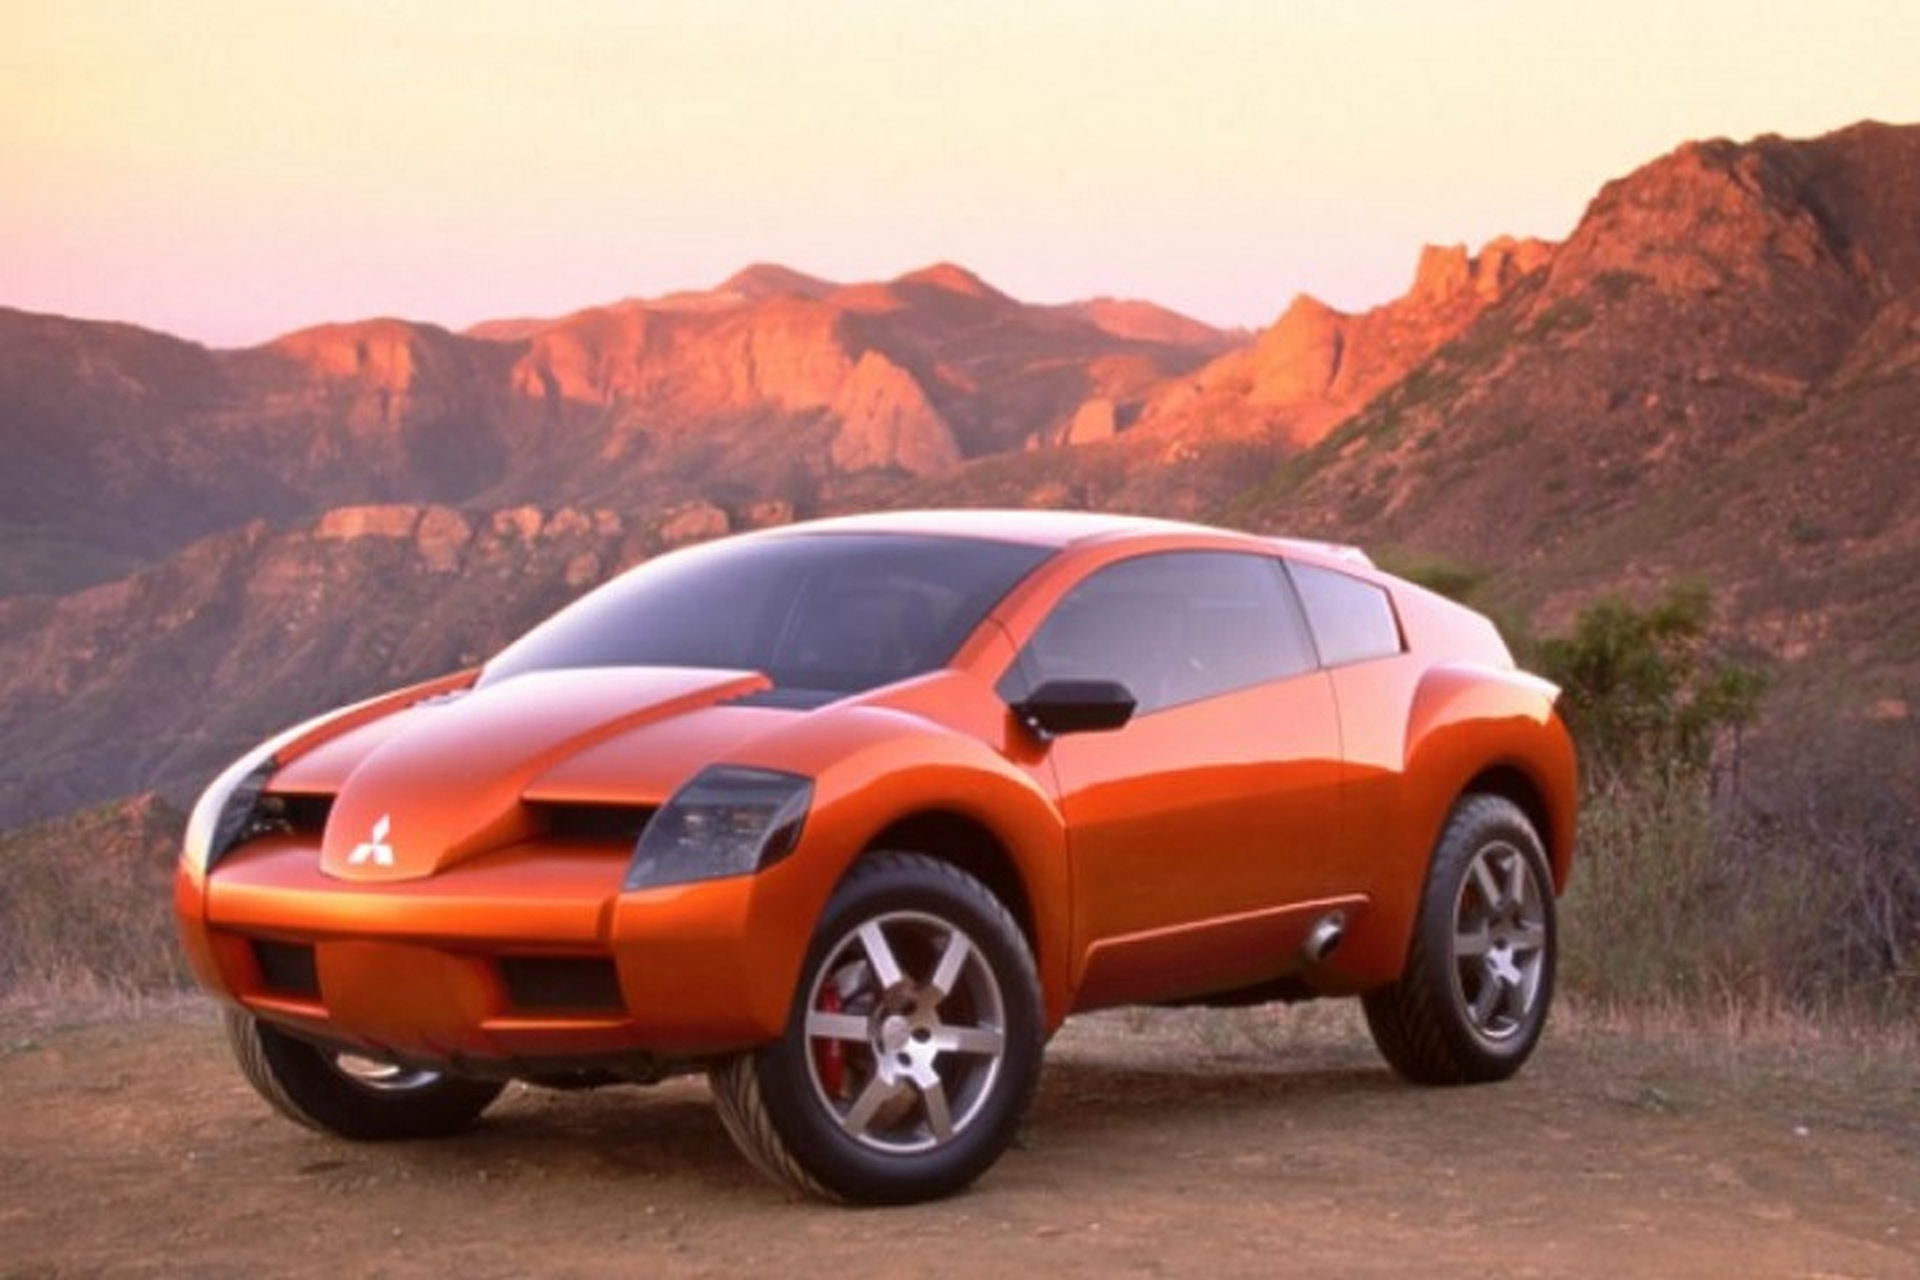 The 2001 Mitsubishi RPM 7000 Concept and Its Rally Car Roots